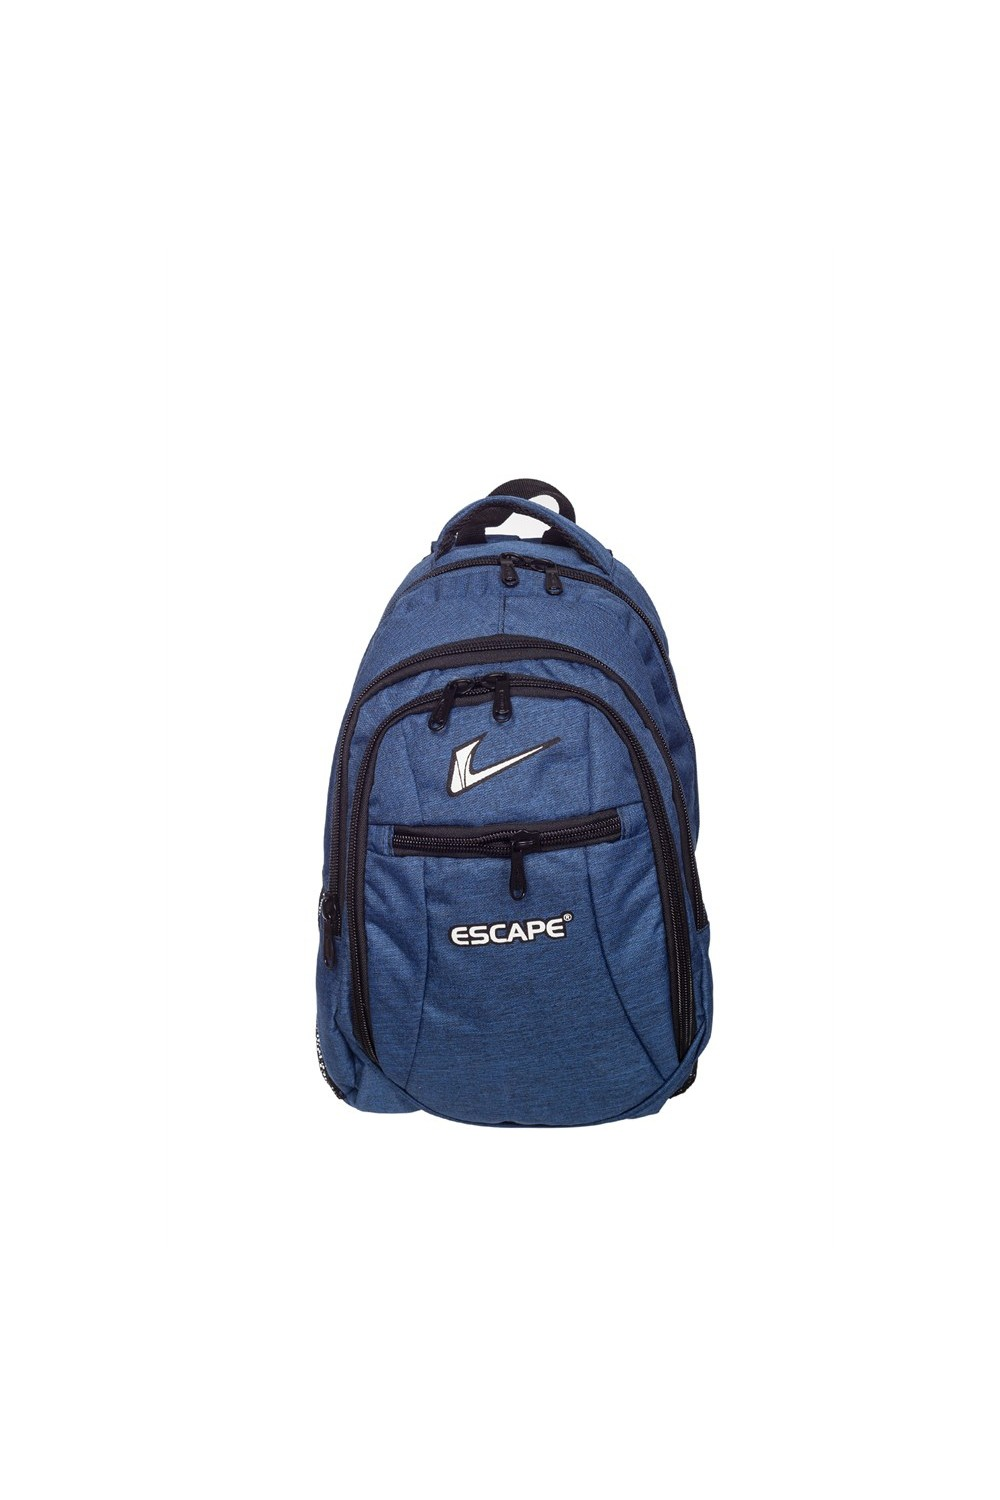 Escape Backpack  ESCSRT307-58